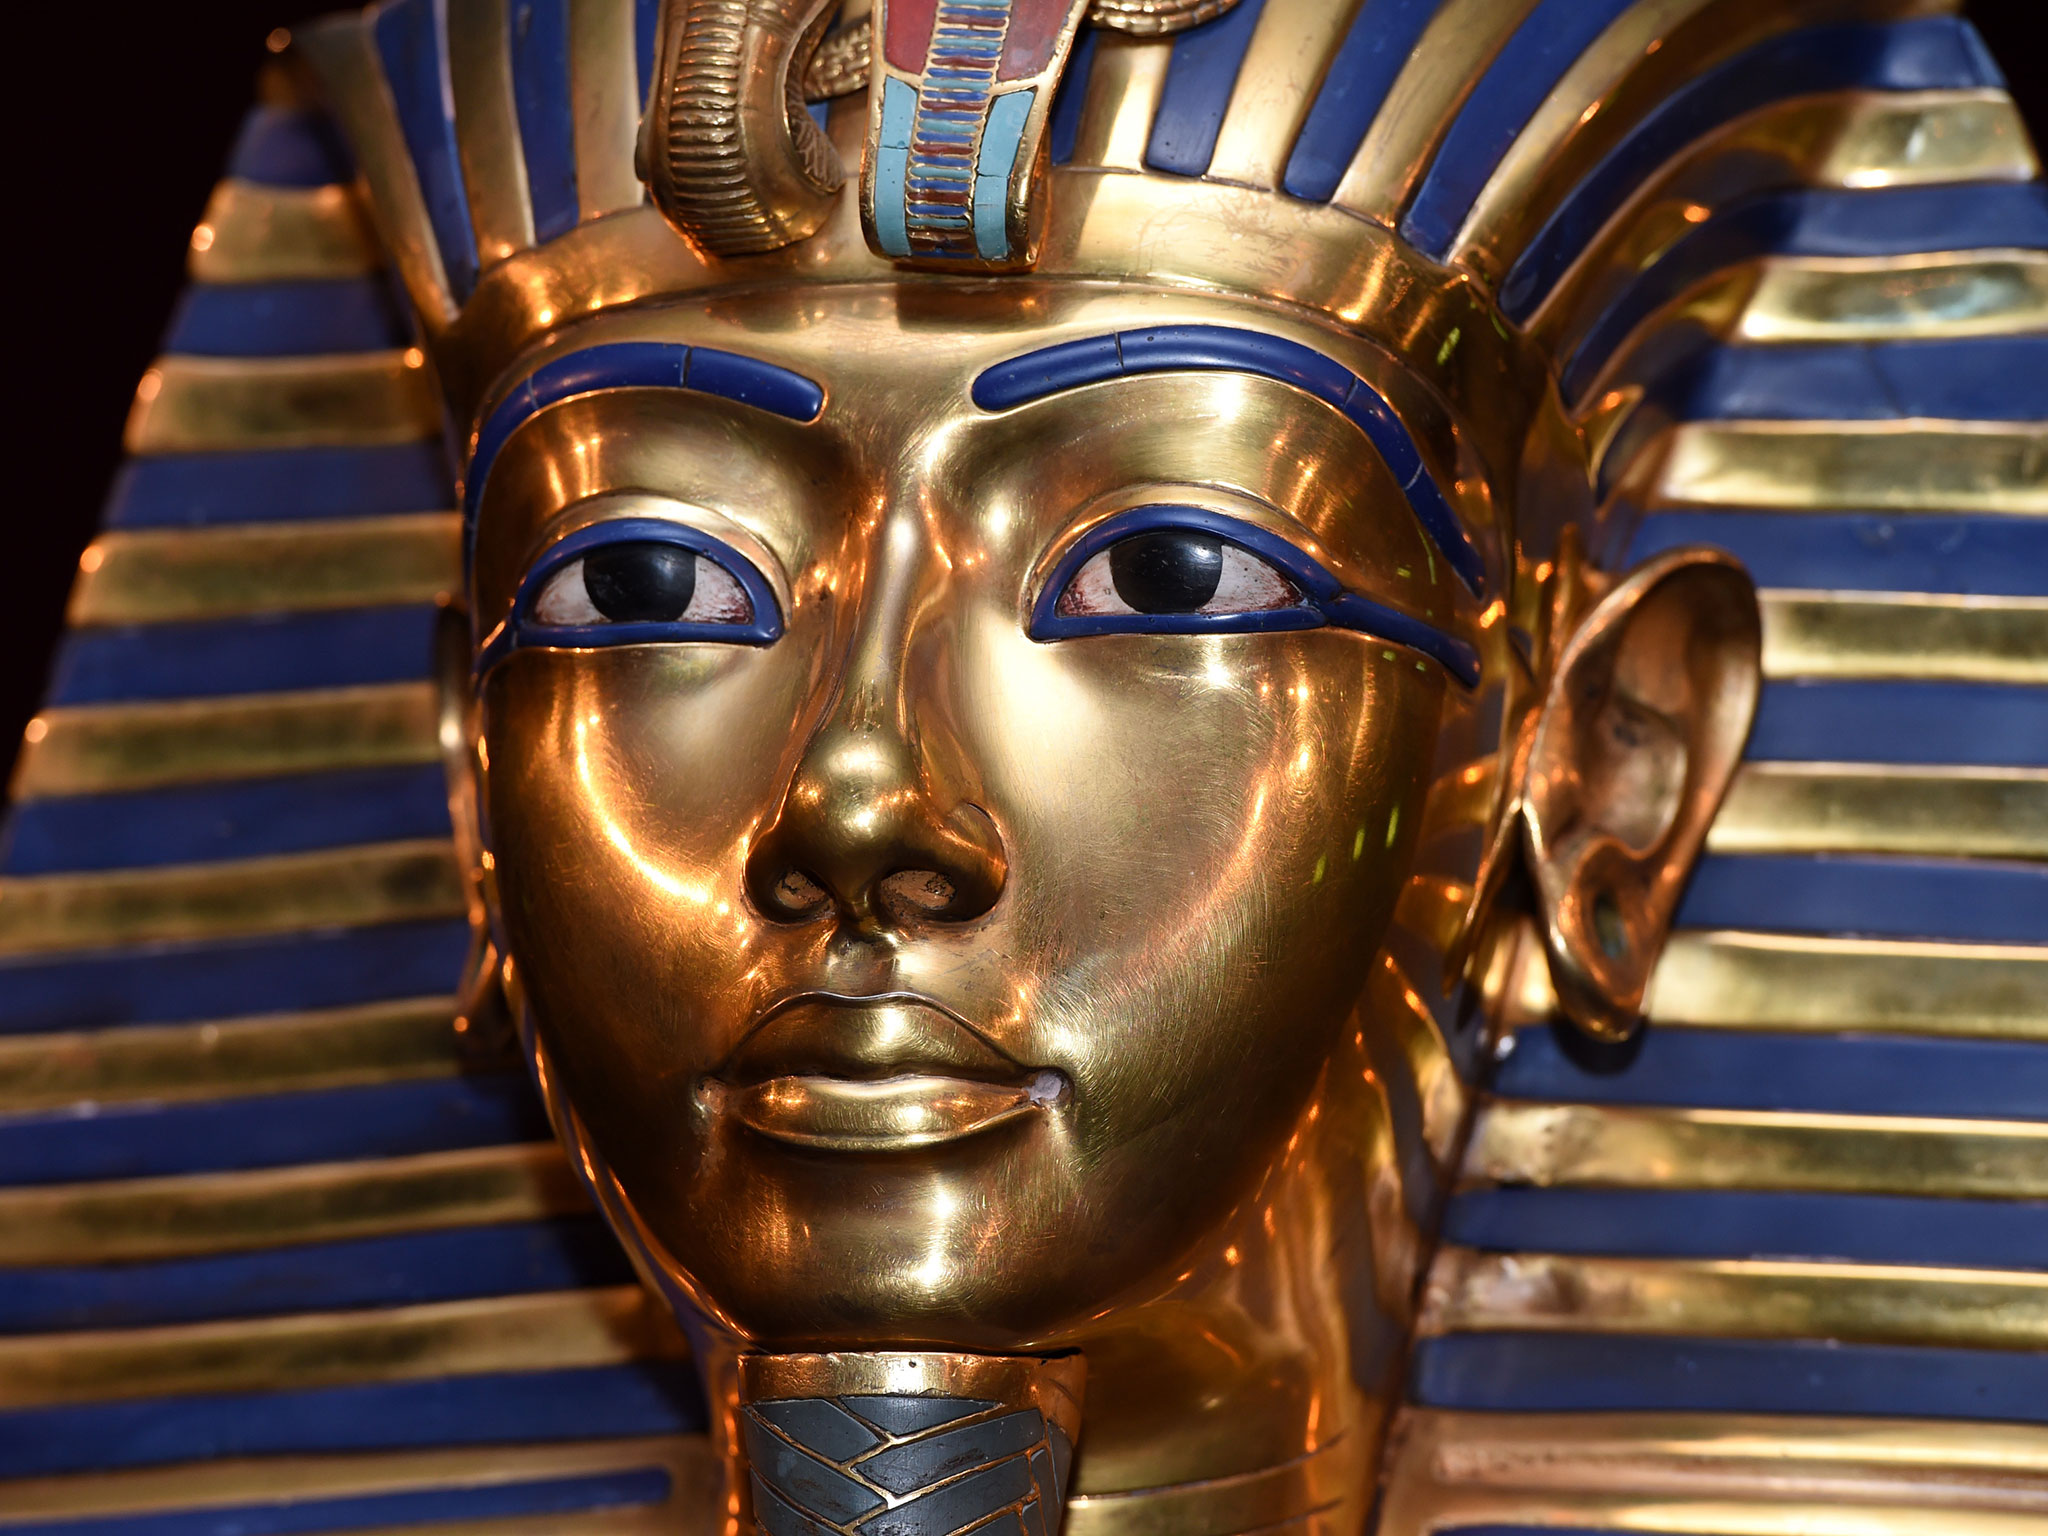 tutankhamen Tutankhamun (also known as tutankhamen and `king tut') is the most famous and instantly recognizable pharaoh in the modern world his golden sarcophagus is now a symbol almost synonymous with egypt.